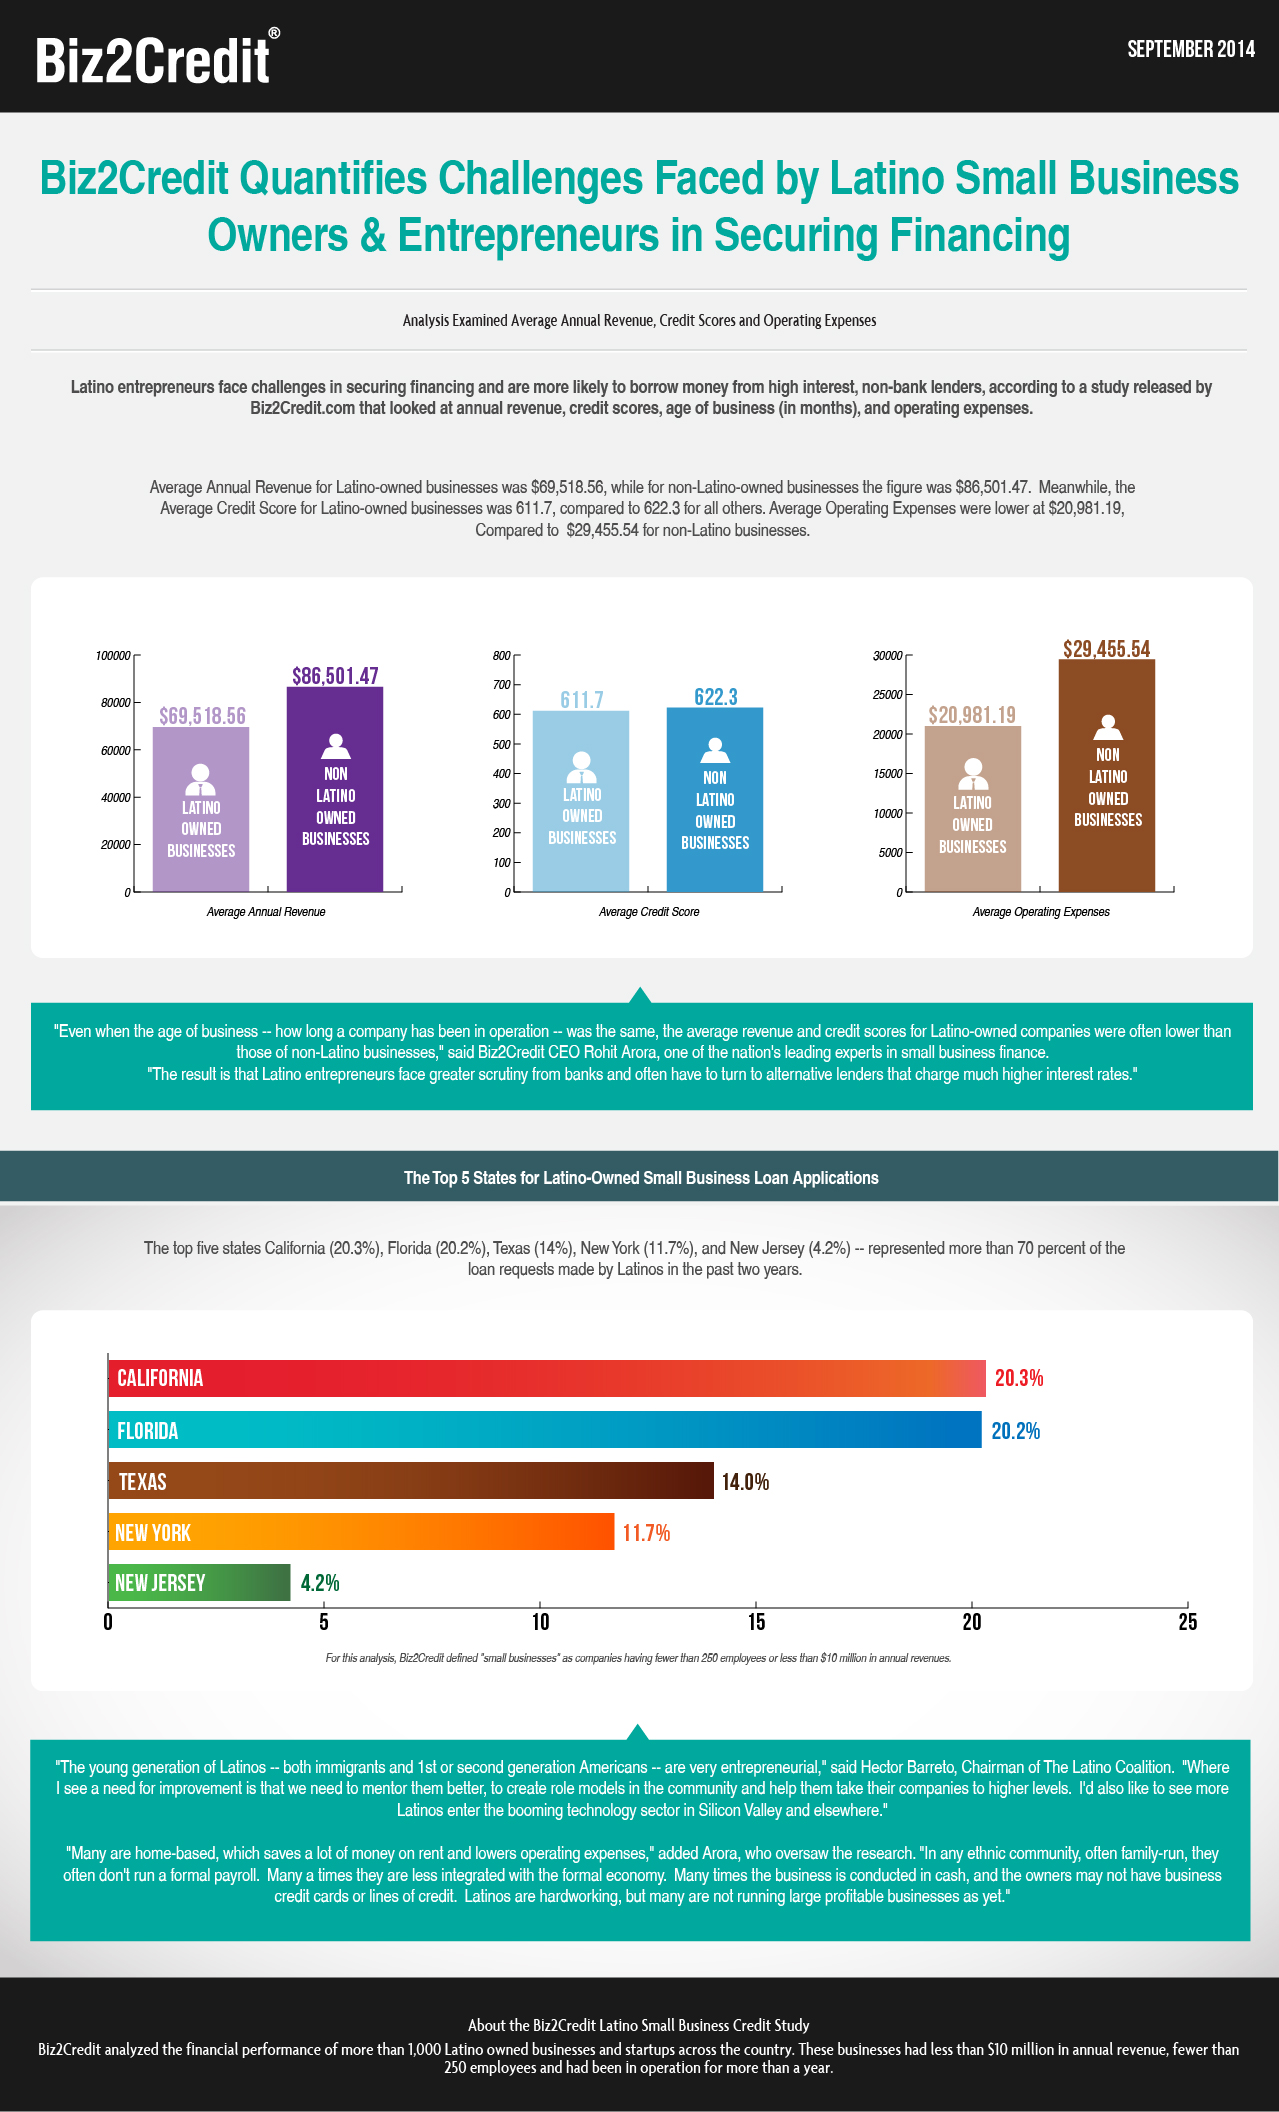 Challenges Faced by Latino Small Business Owners-Infographic